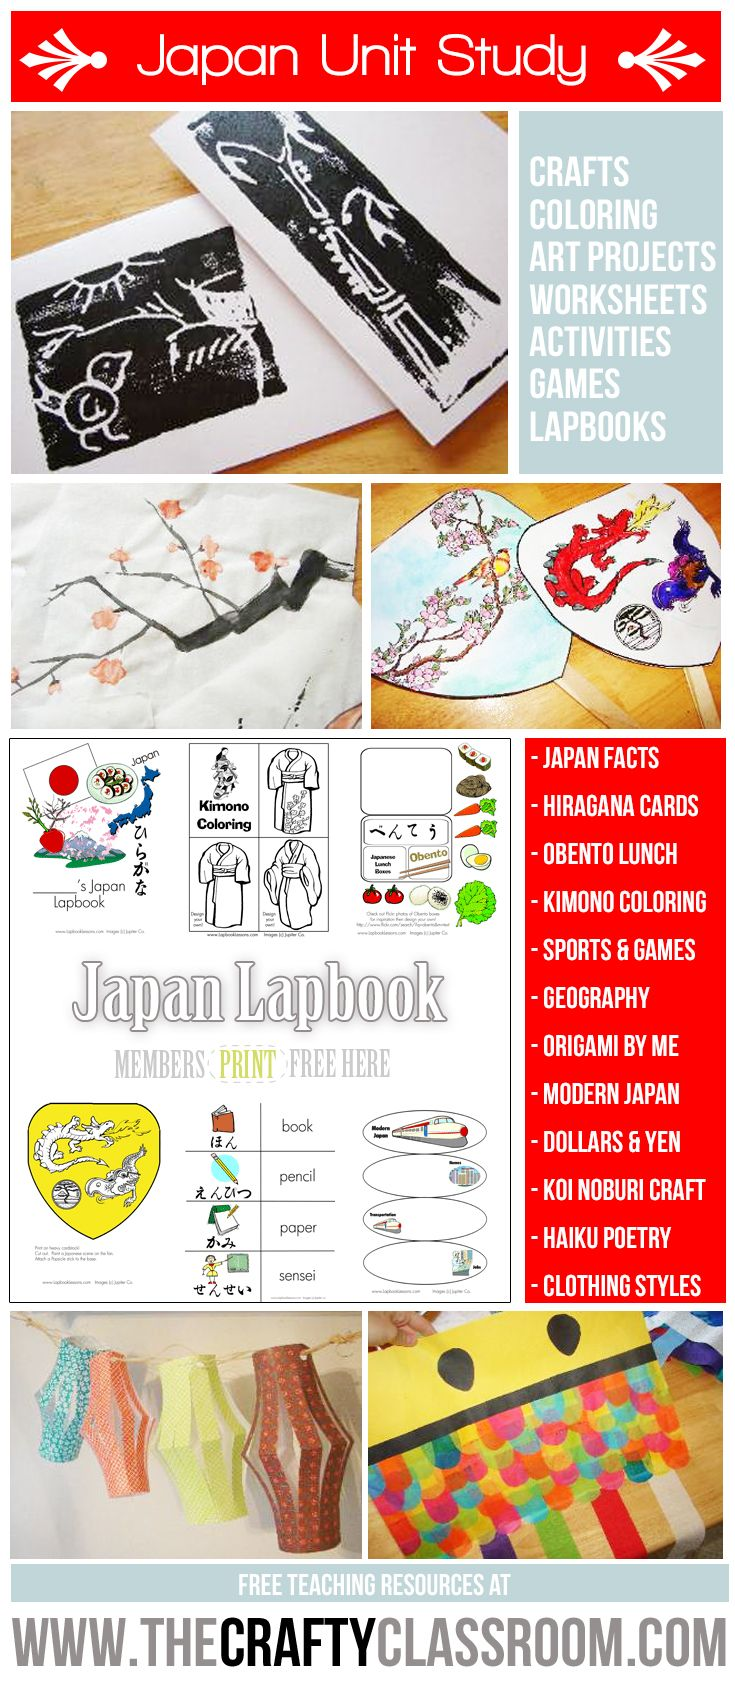 Free Japan Unit Study Resources!  Crafts, Activities, Coloring Pages, Lapbooking Elements, Games and more at The Crafty Classroom.